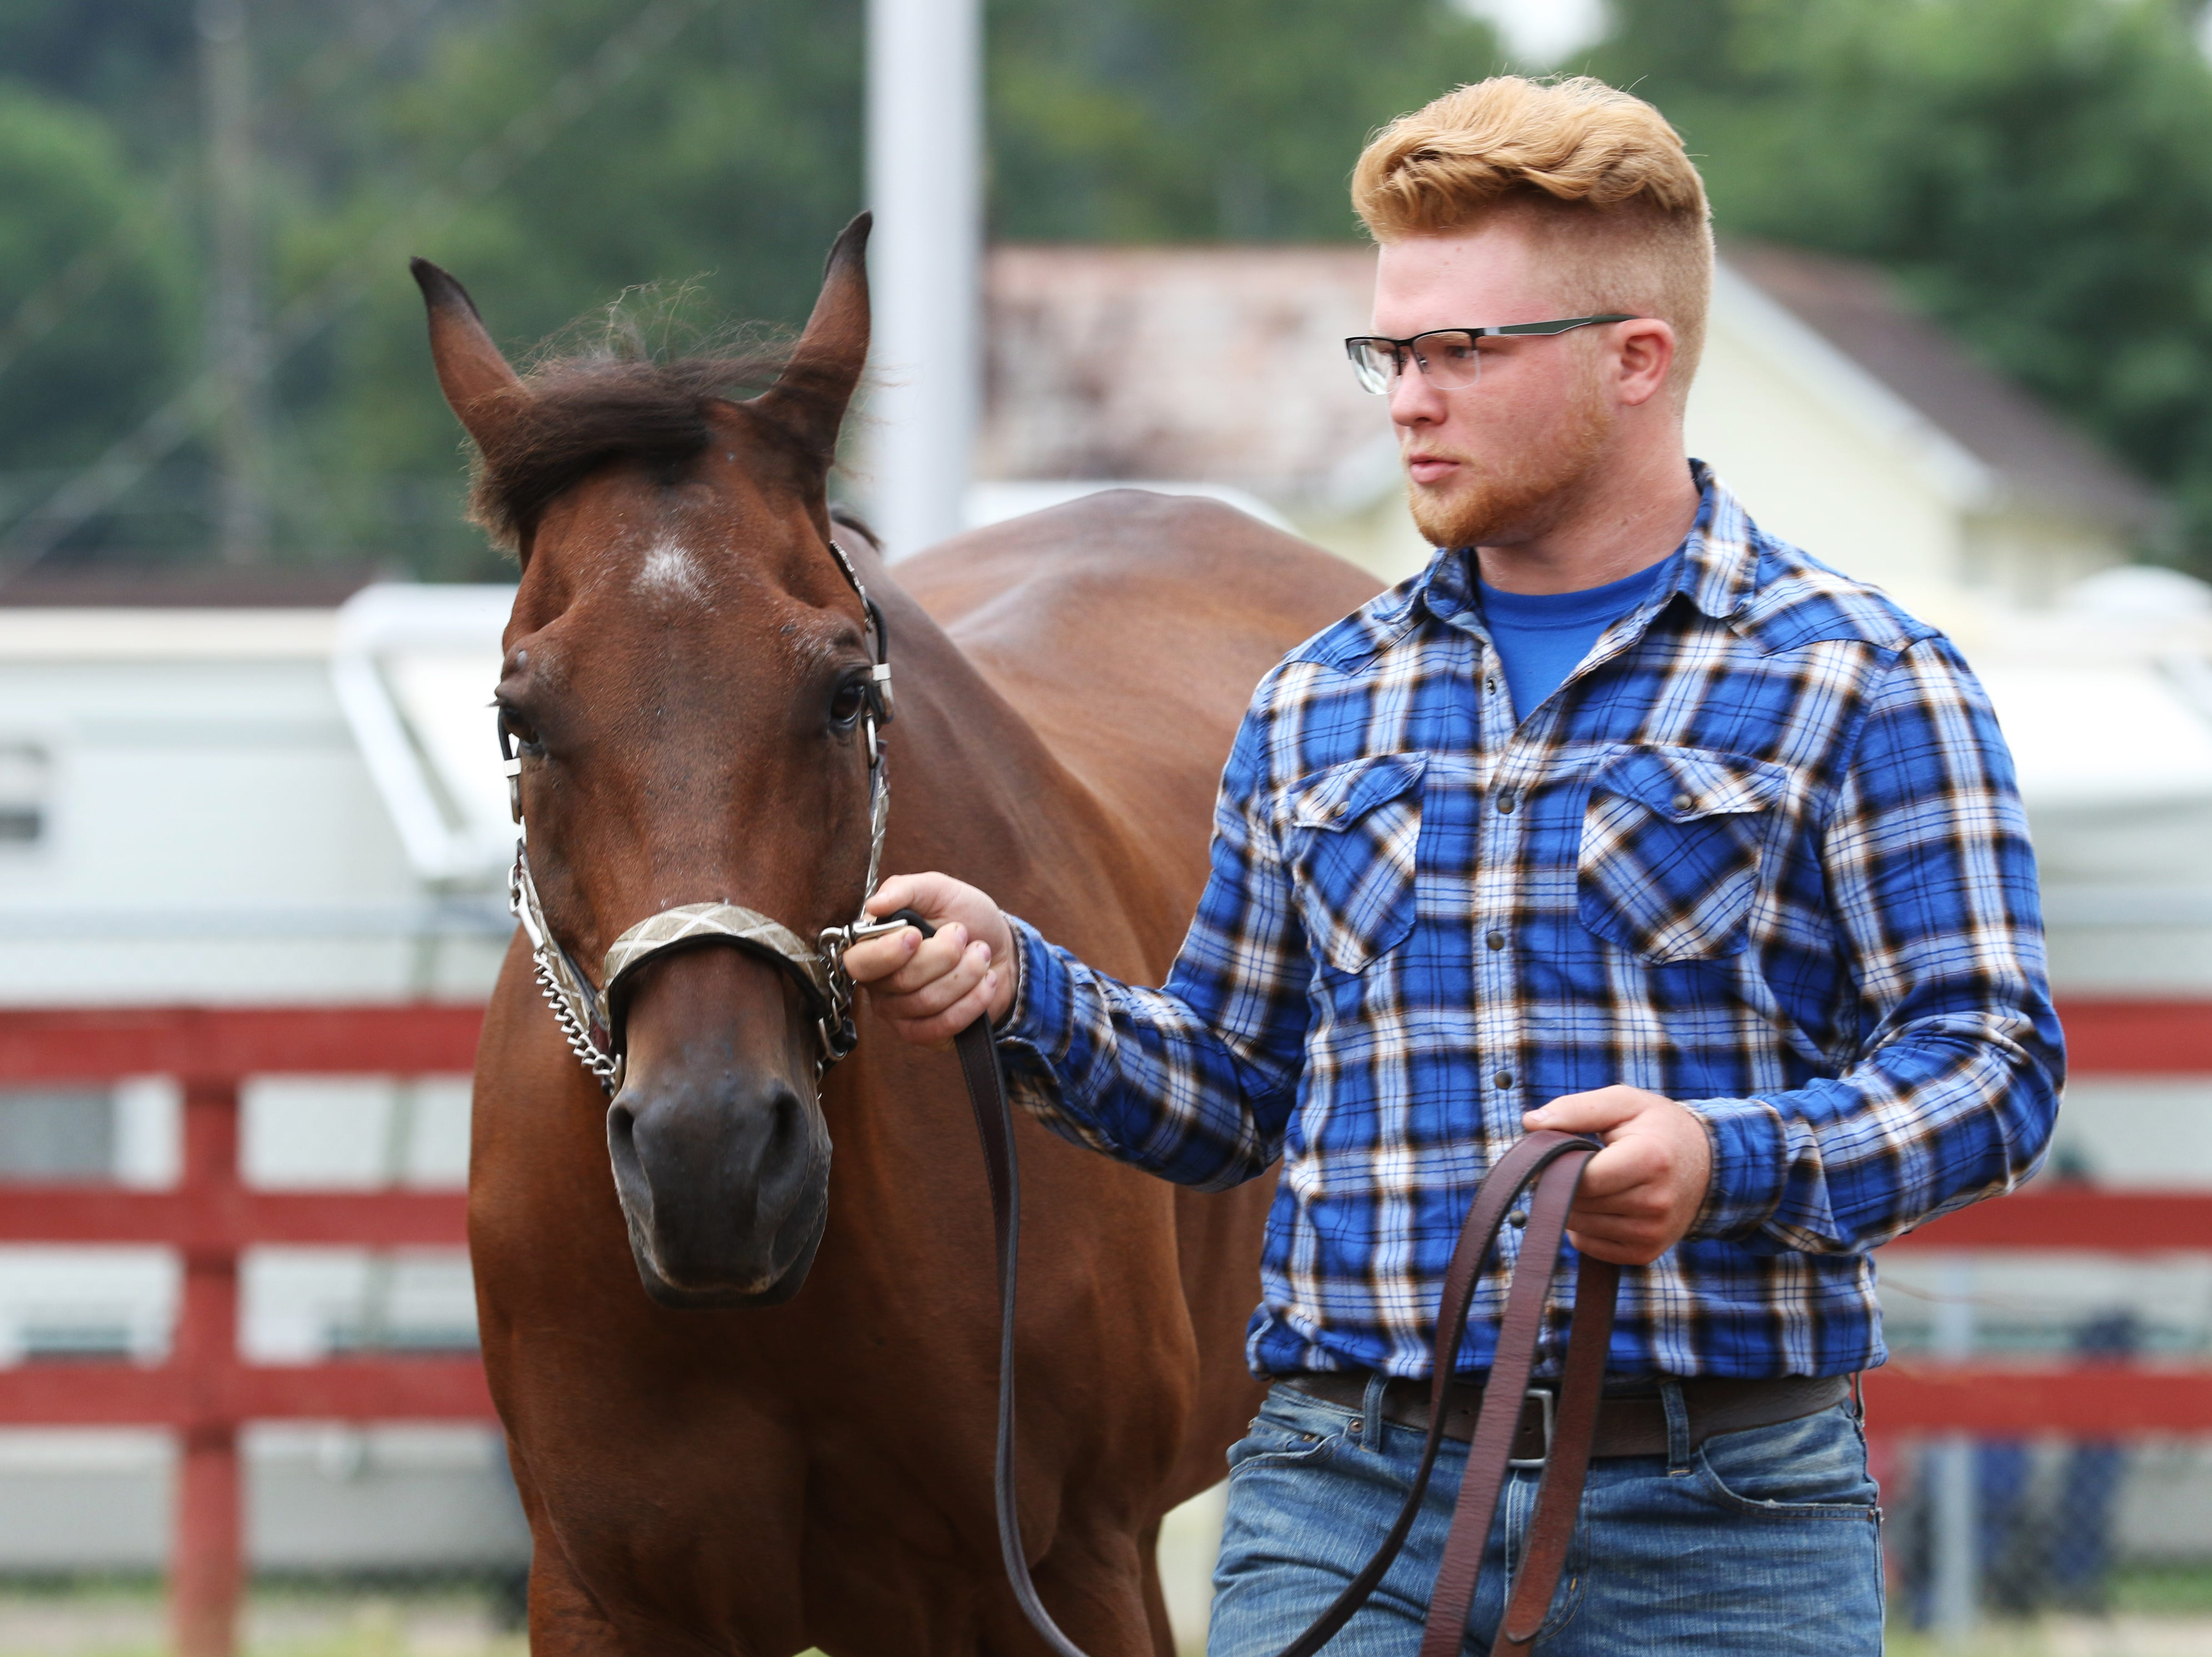 Tyler McKenzie, 16, of Hopewell, shows a horse during the Showman of Showmen competition at the Muskingum County Fair on Friday.